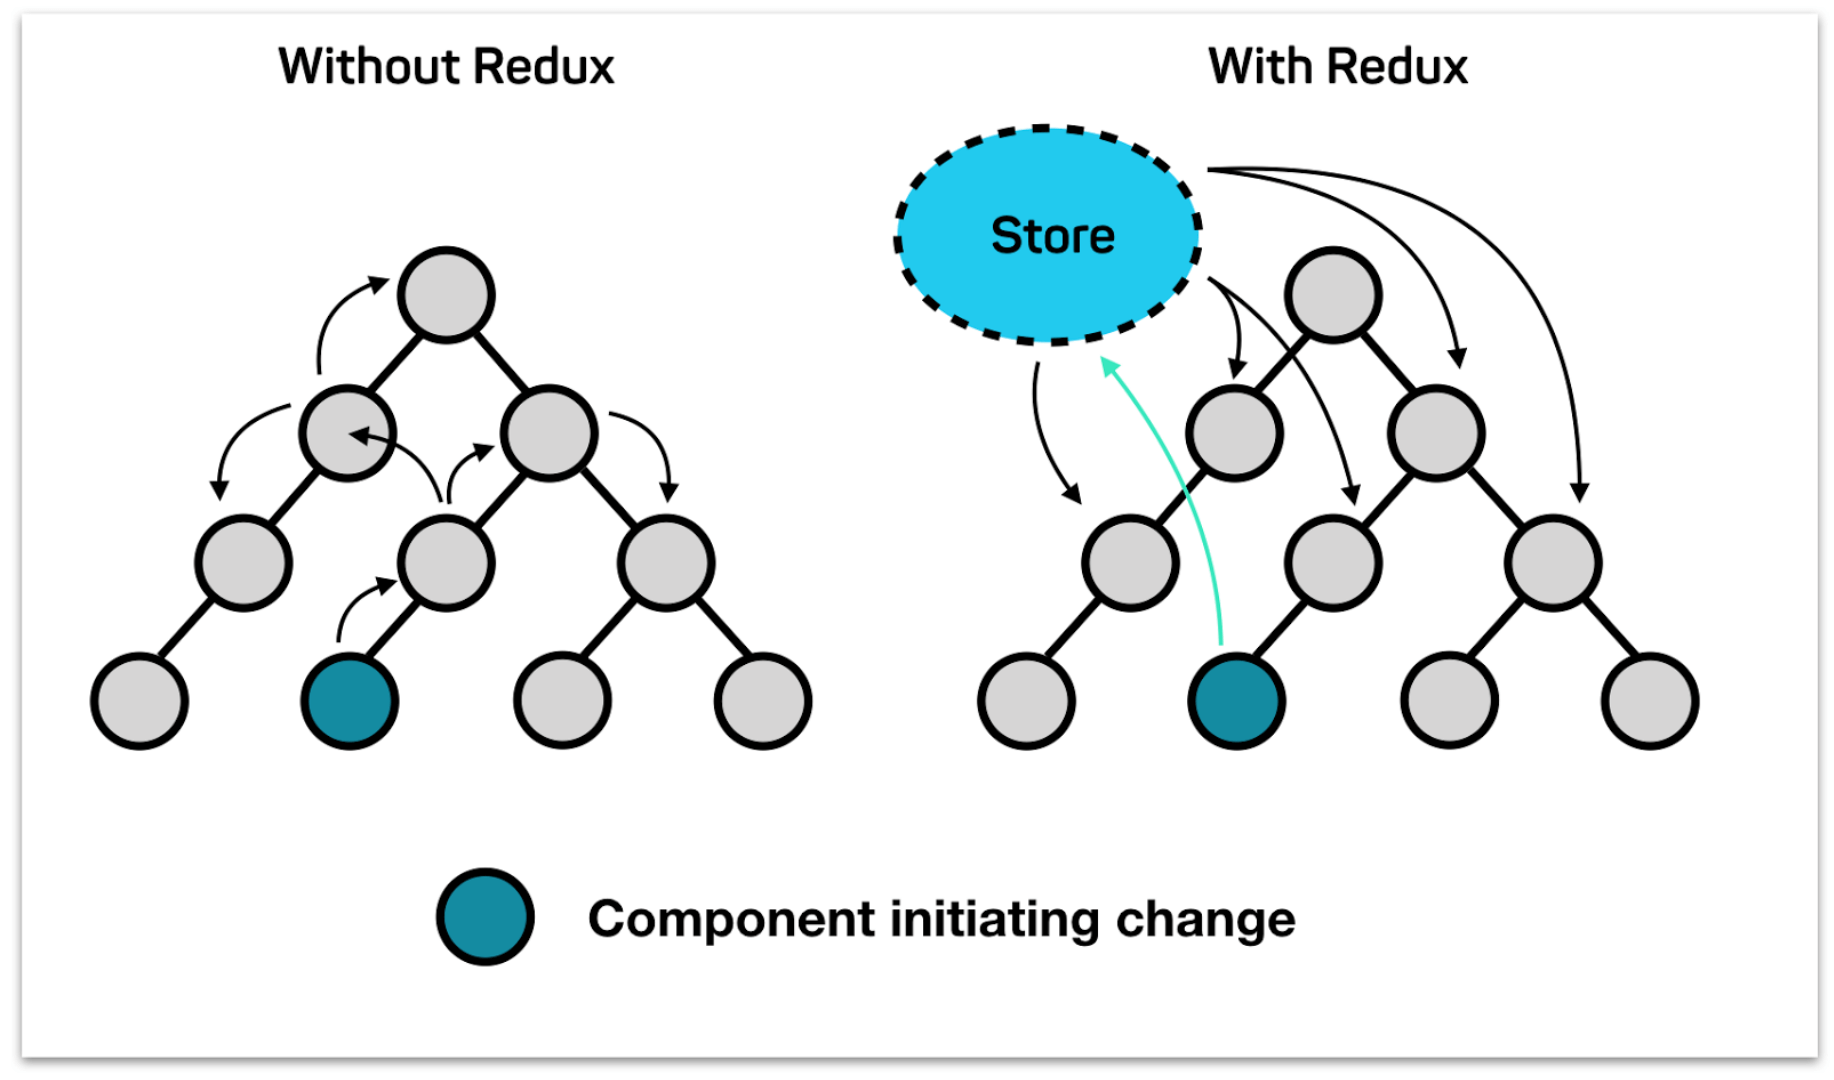 graph of components initiating change with and without redux